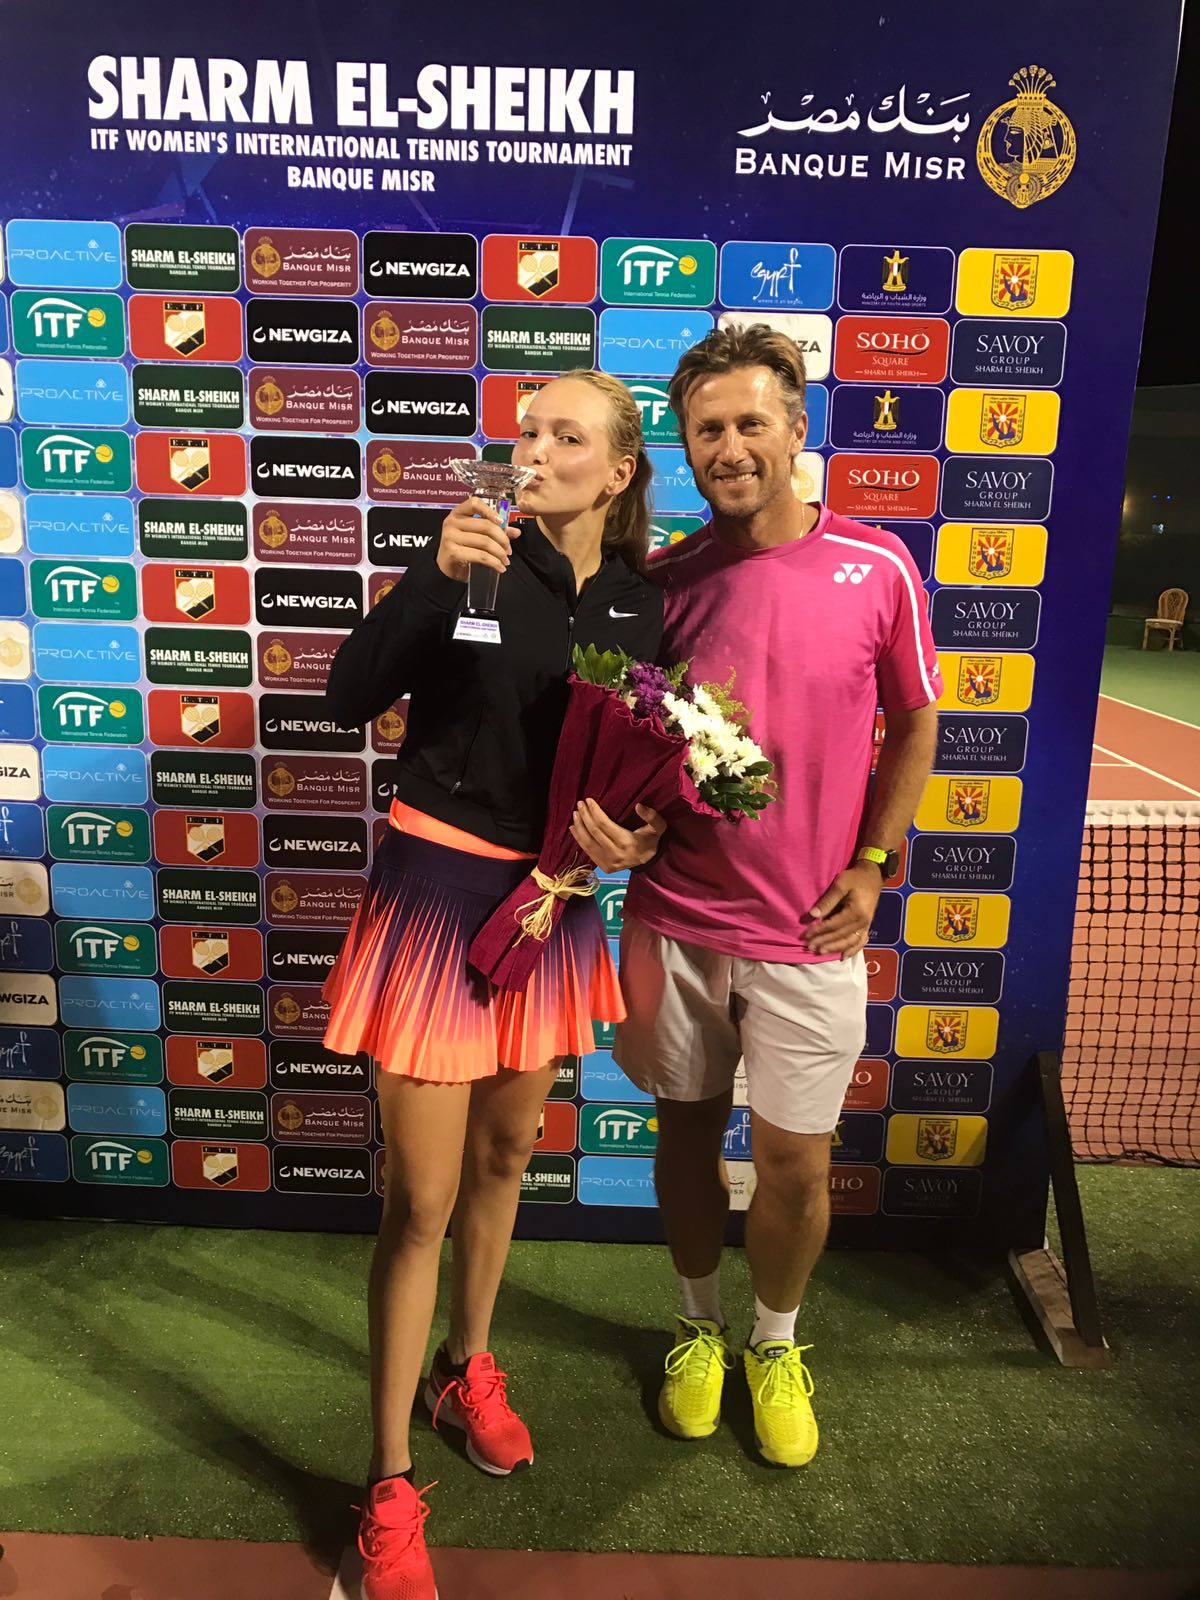 Donna Vekic and Tennis Coach Nick Horvat ITF Women's Circuit - Sharm el-Sheikh, Egypt